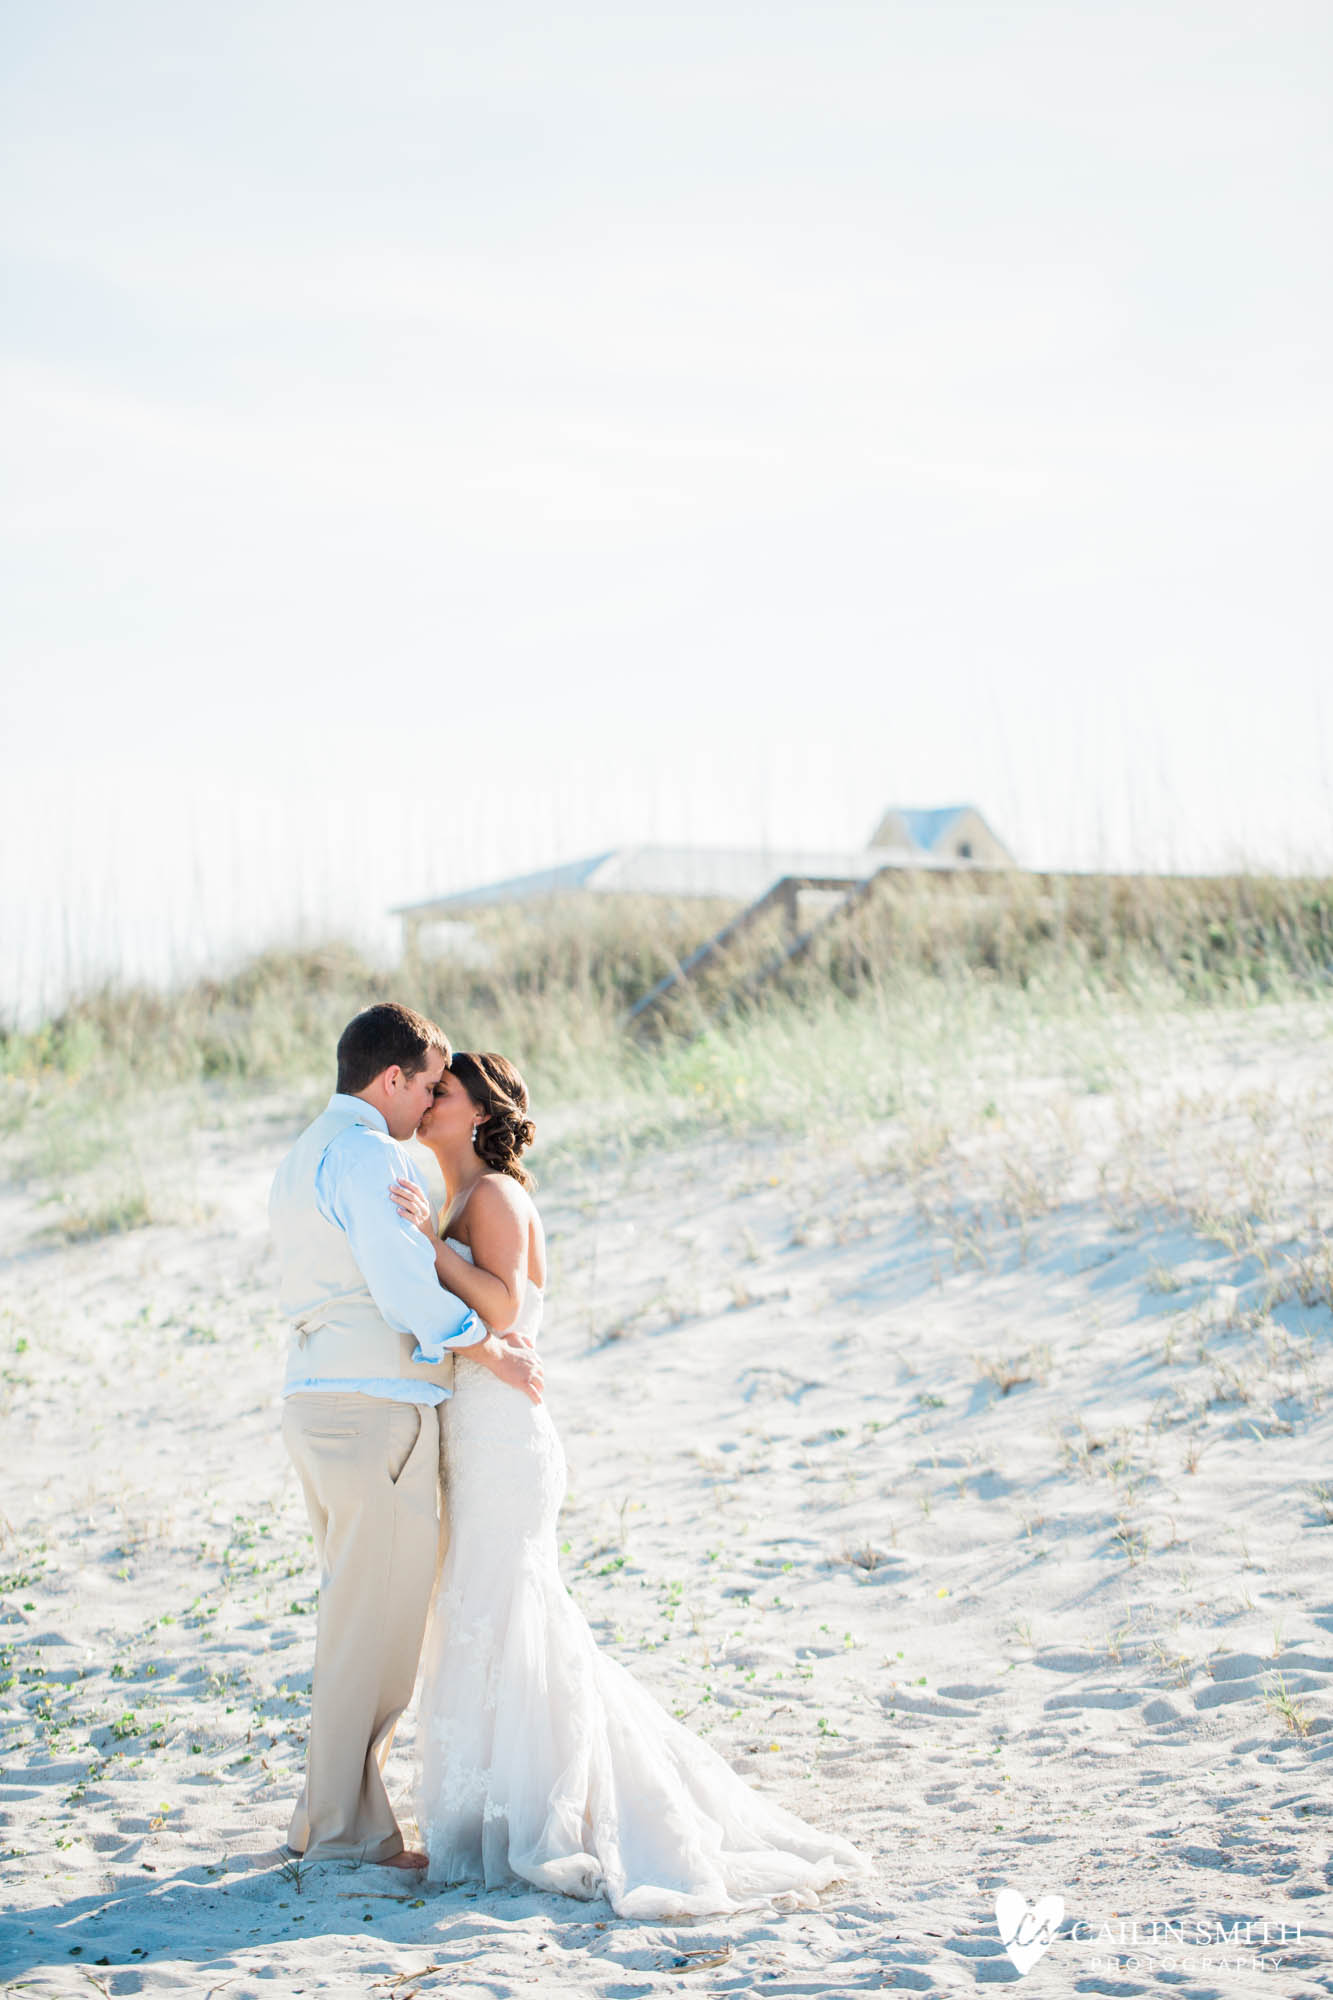 Kimberly_Ross_Amelia_Island_Wedding_Photography_039.jpg